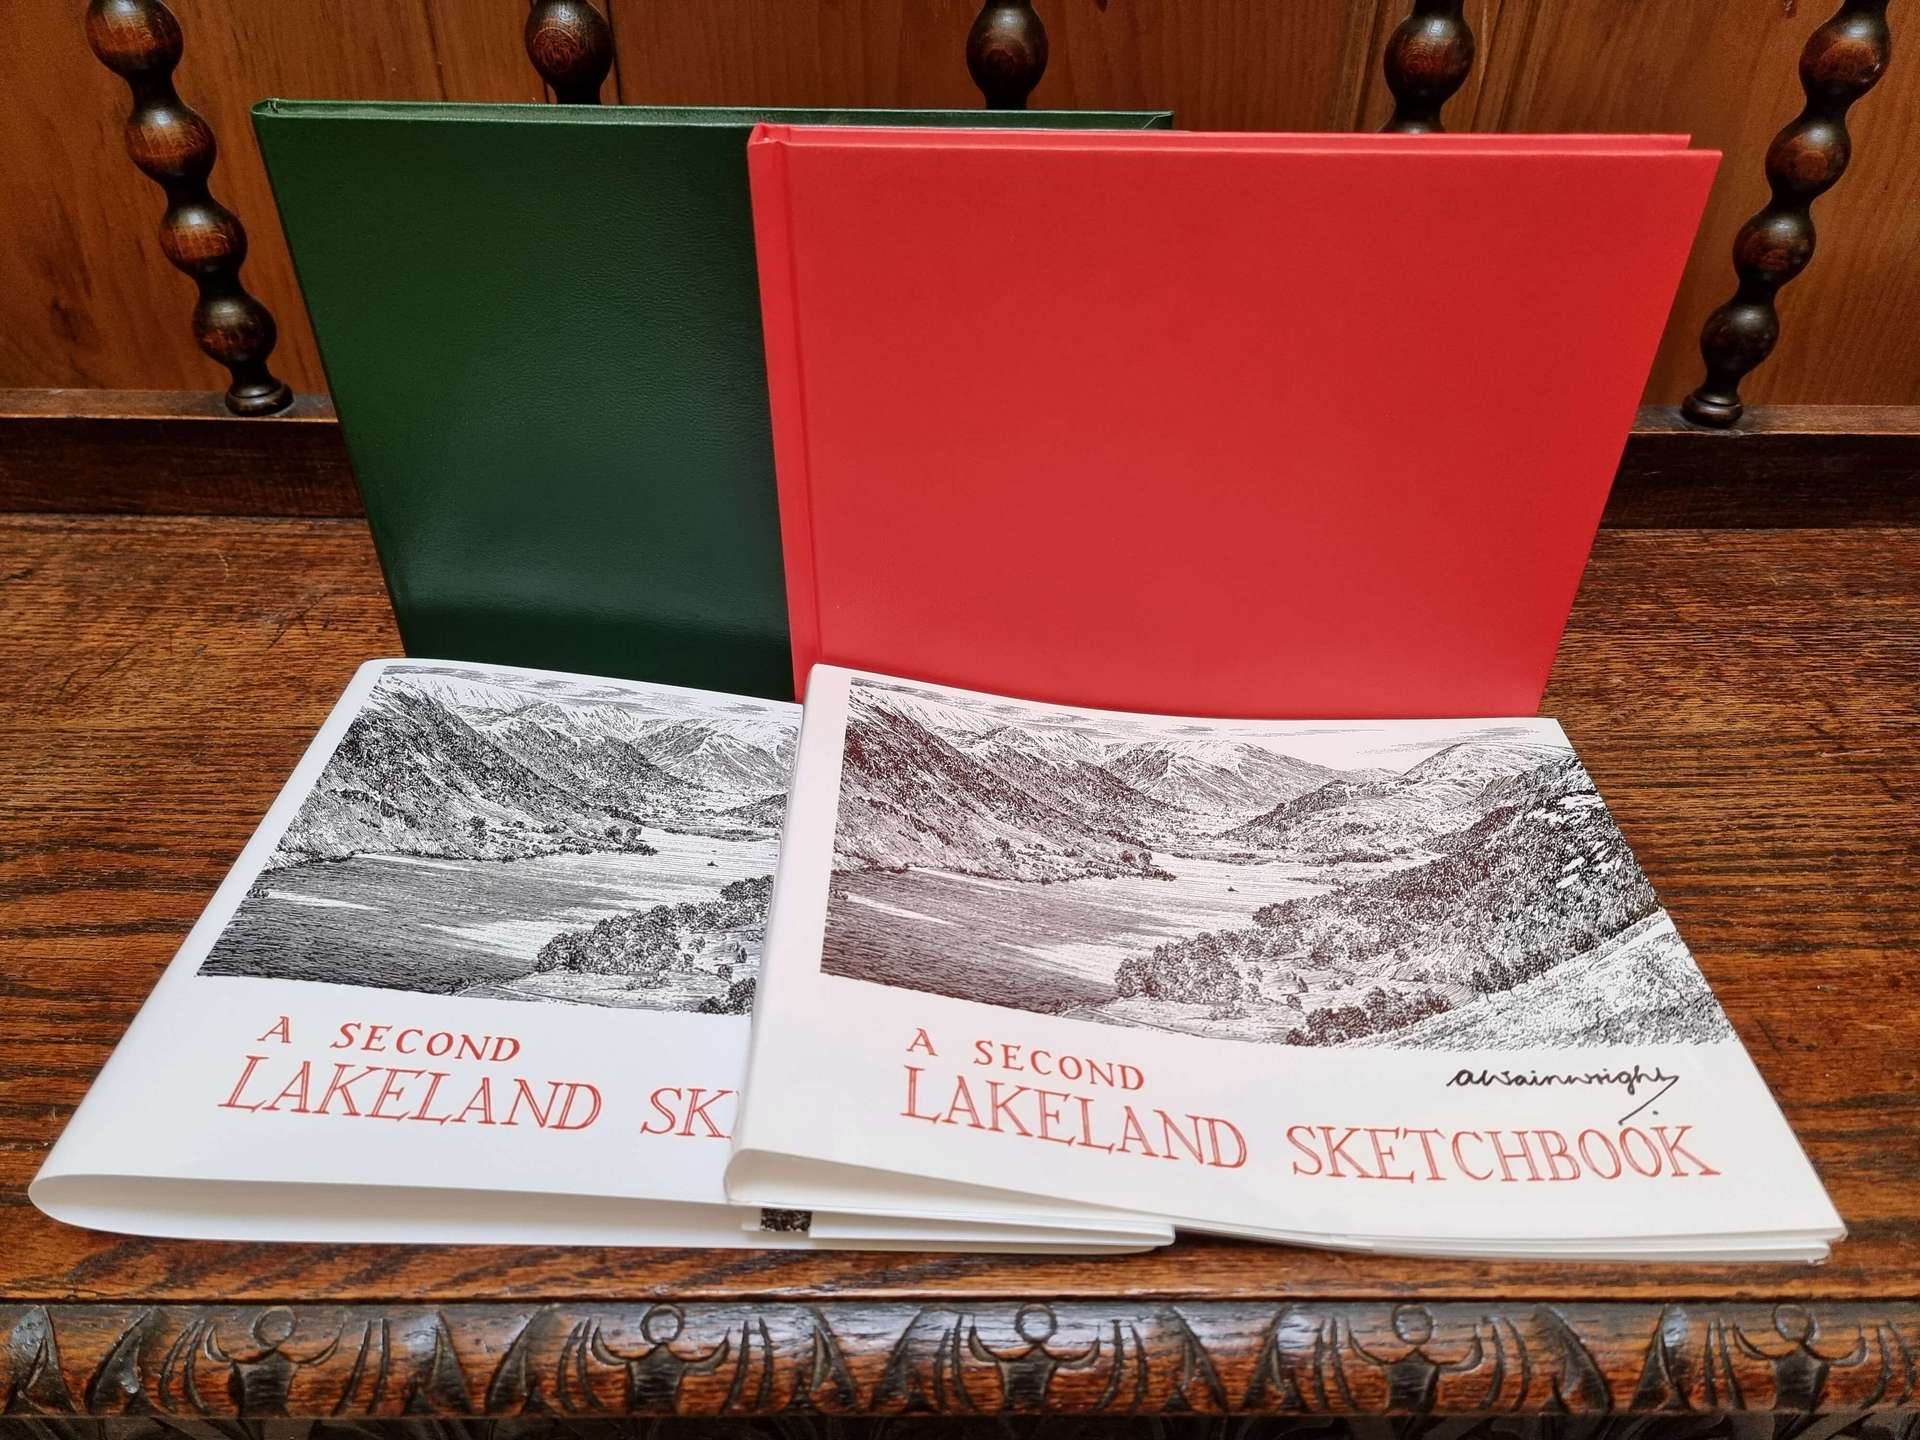 A Second Lakeland Sketchbook First Edition Later Prints